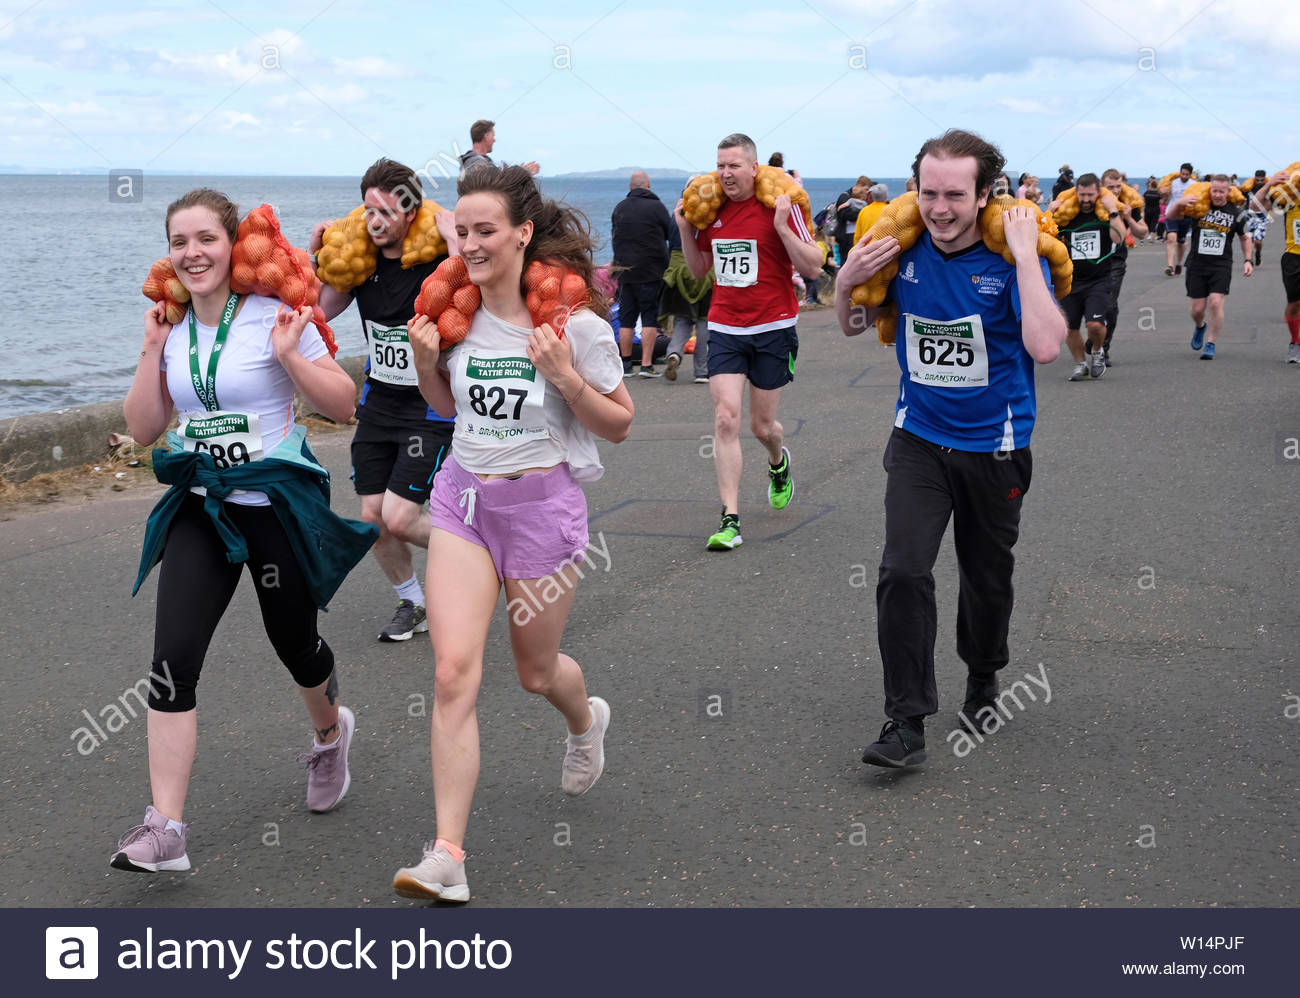 Edinburgh, Scotland, UK. 30th June 2019.  The Great Scottish Tattie Run at Silverknowes Promenade, organised by Great Scottish Events, a fundraising event organiser group. The Race is for one mile with a bag of potatoes 20 kilo for men,10 kilo for women. All participants get to keep their bag of tatties. Credit:Craig Brown - Stock Image